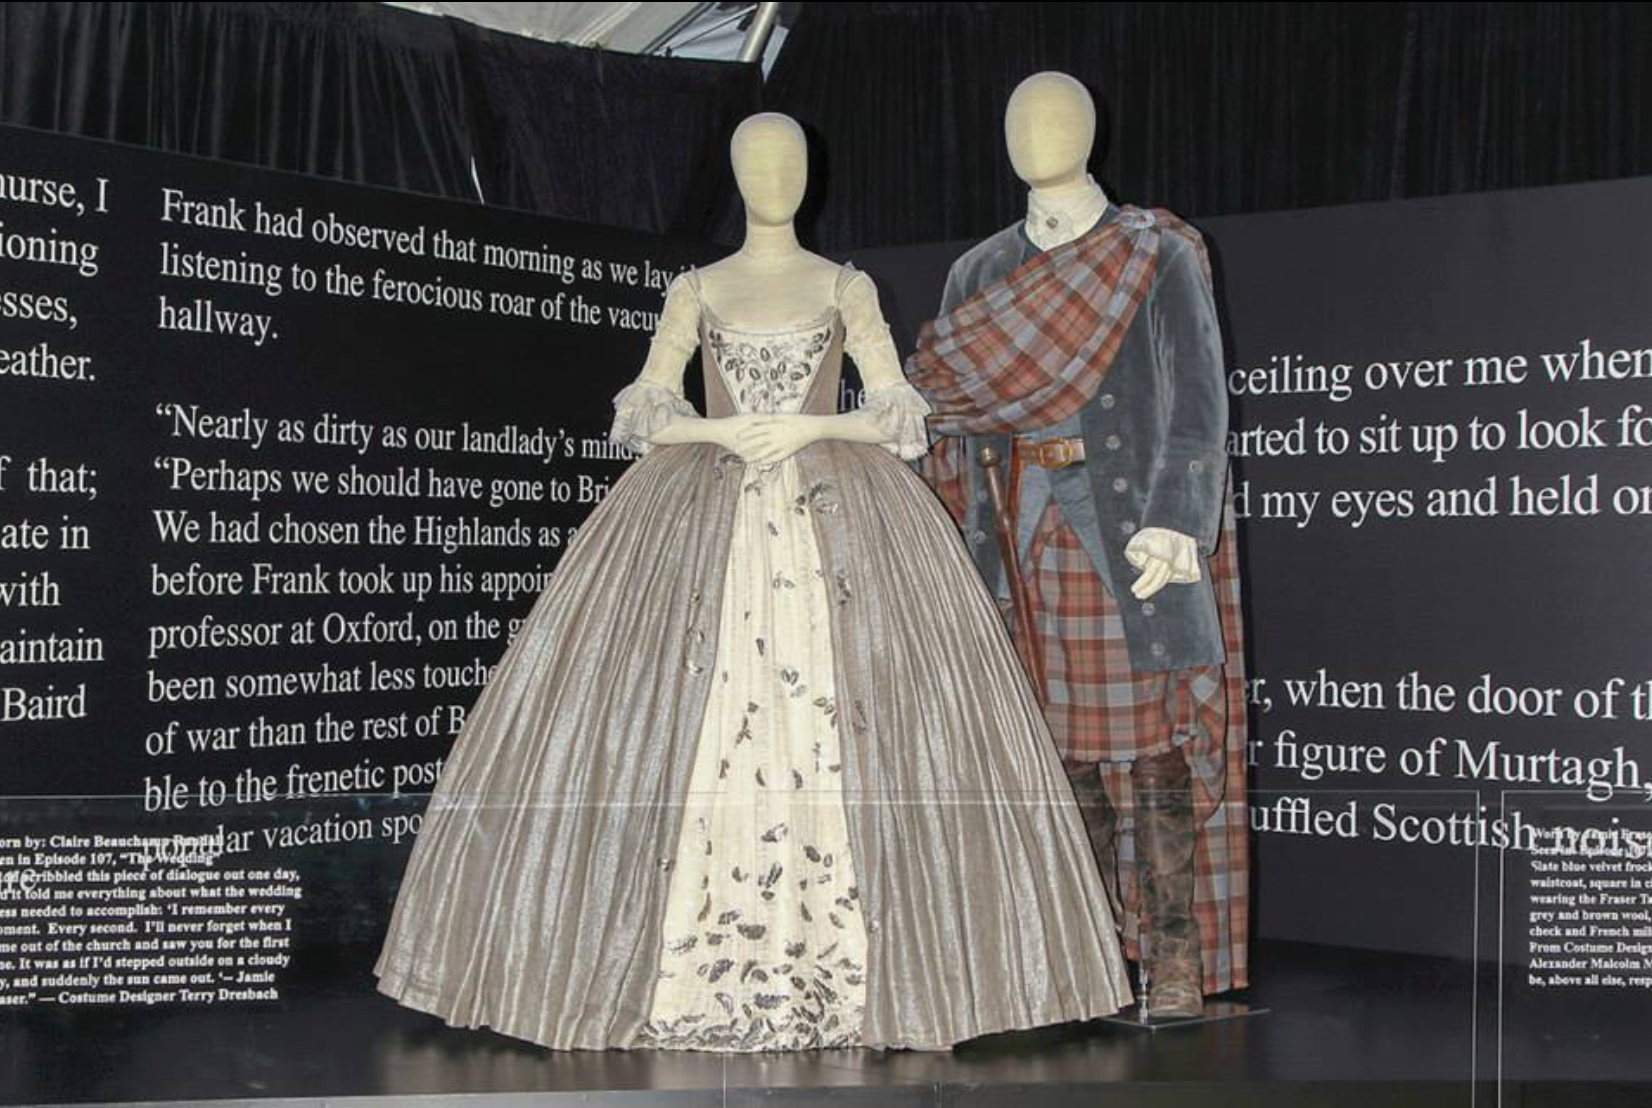 """Claire's wedding dress is made of silvered jute linen, with very fine cartridge pleating. The stomacher and petticoat is a silk/linen weave, covered in 450 hand embroidered silver plate acorns and leaves, and one silver dog bone. Layered behind the petticoat and stomacher, is another layer of silk cover in hand slivered mica shards, to create an organic shimmer effect."" - Costume Designer Terry Dresbach"